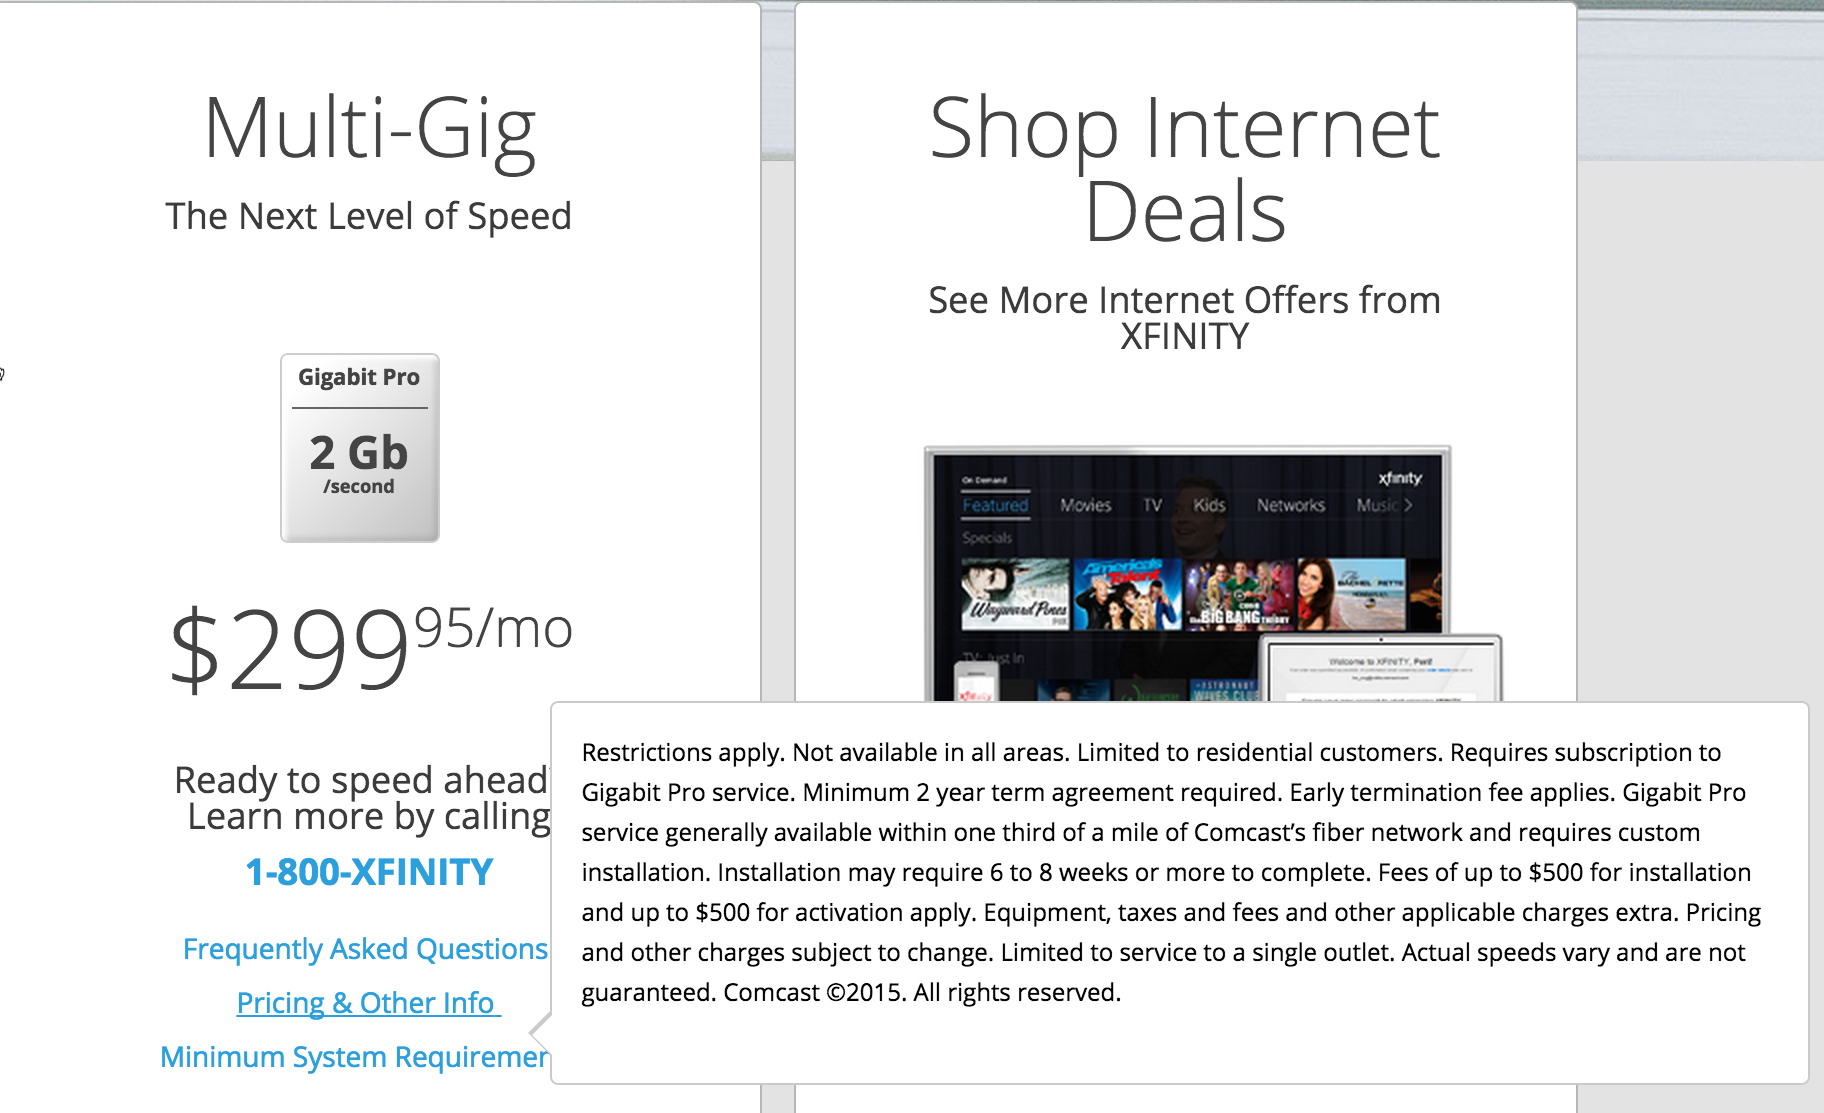 Comcast's High-Speed Fiber Service Will Cost $300/Month Just